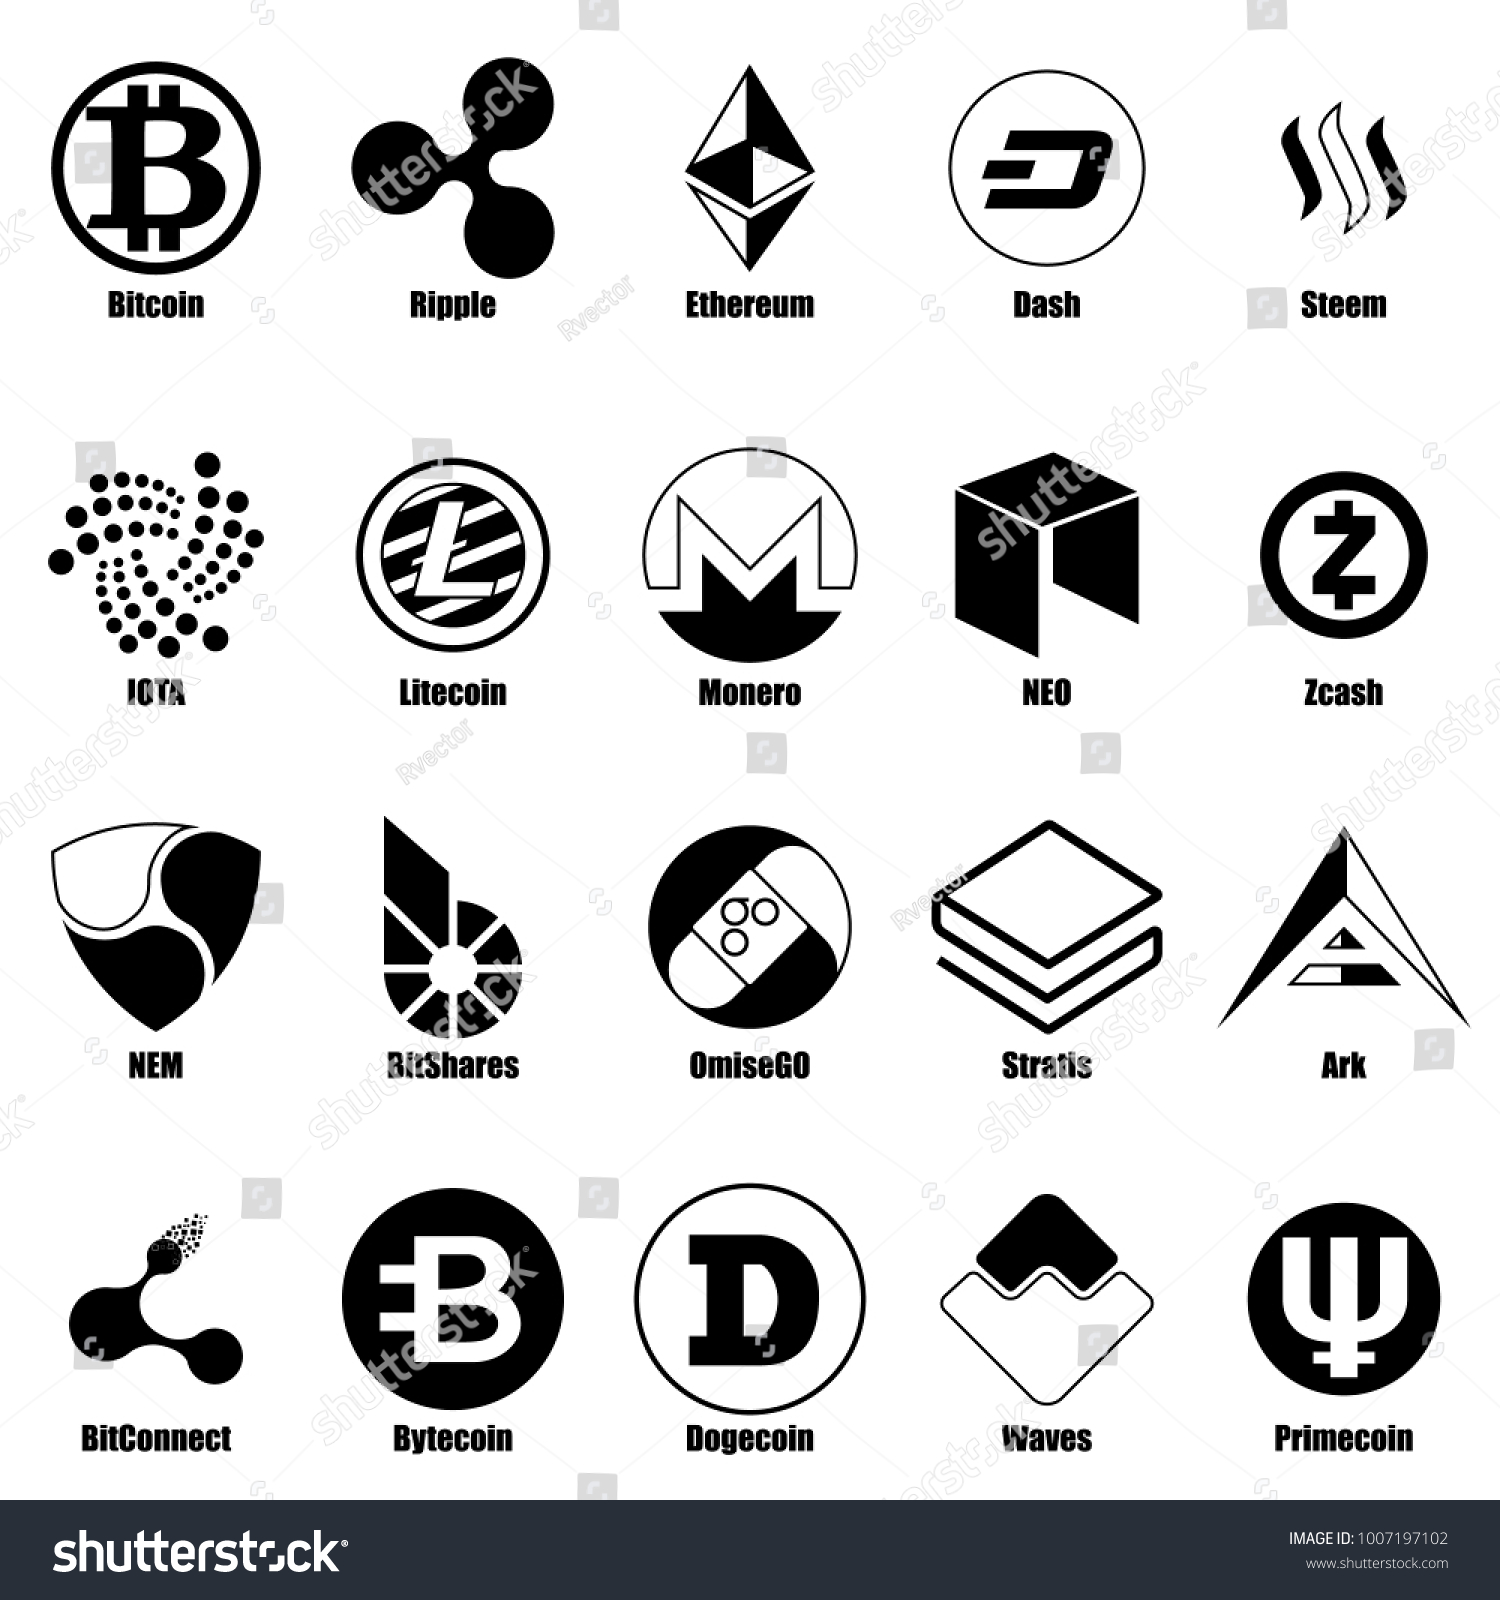 Cryptocurrency types icons set simple illustration stock vector cryptocurrency types icons set simple illustration of 25 cryptocurrency types vector icons for web biocorpaavc